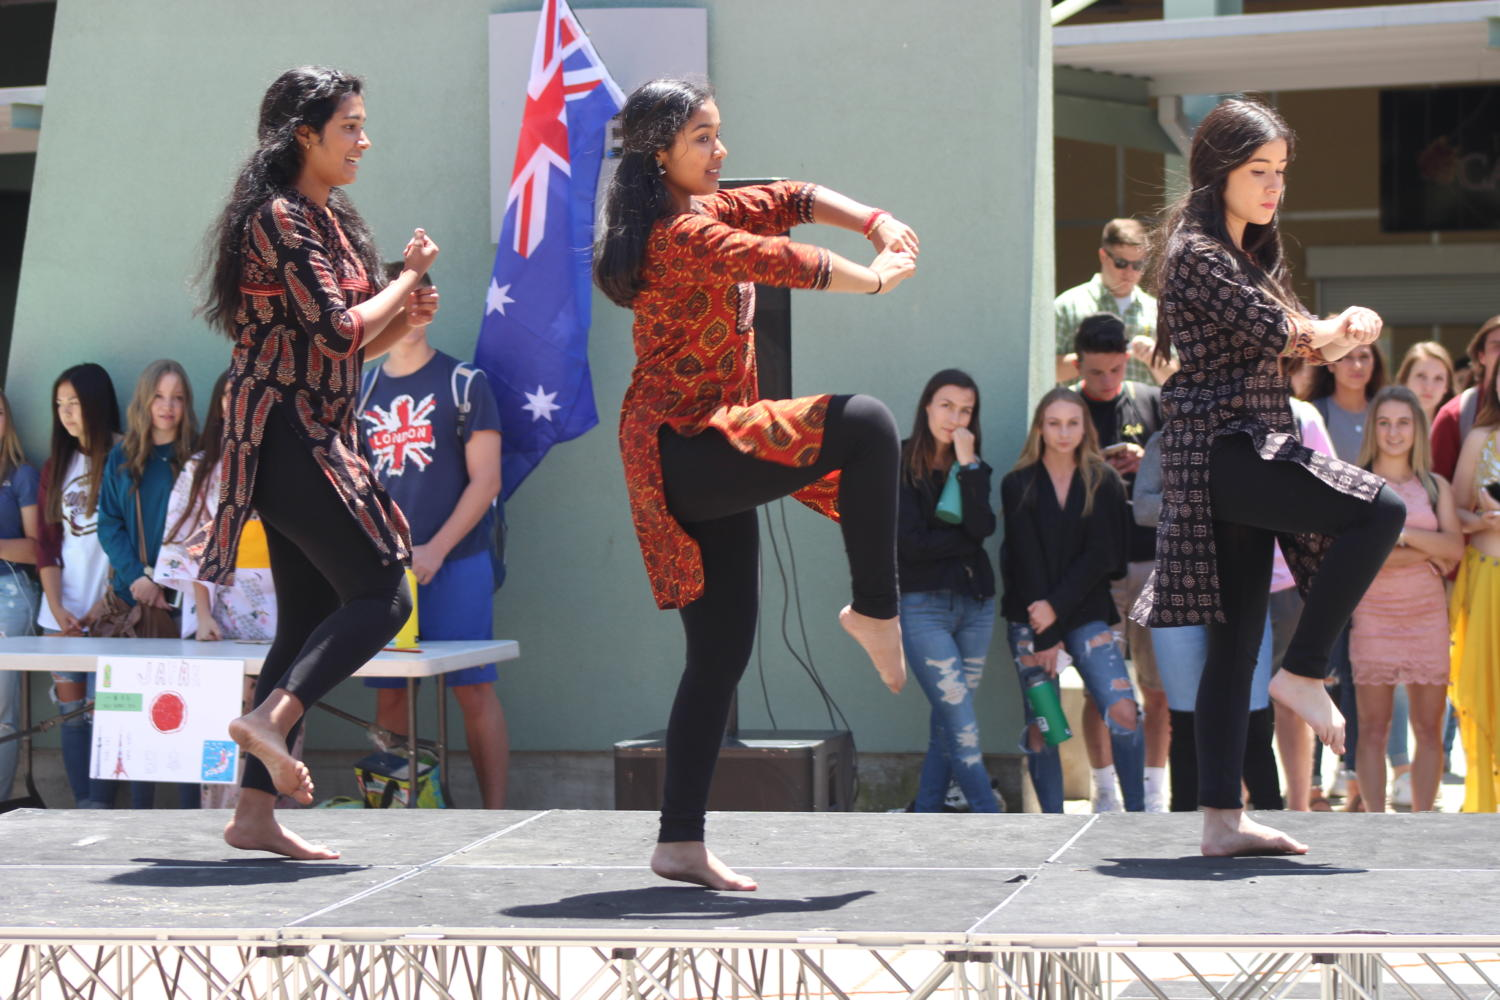 Multicultural Day brings students of all backgrounds together to share their culture